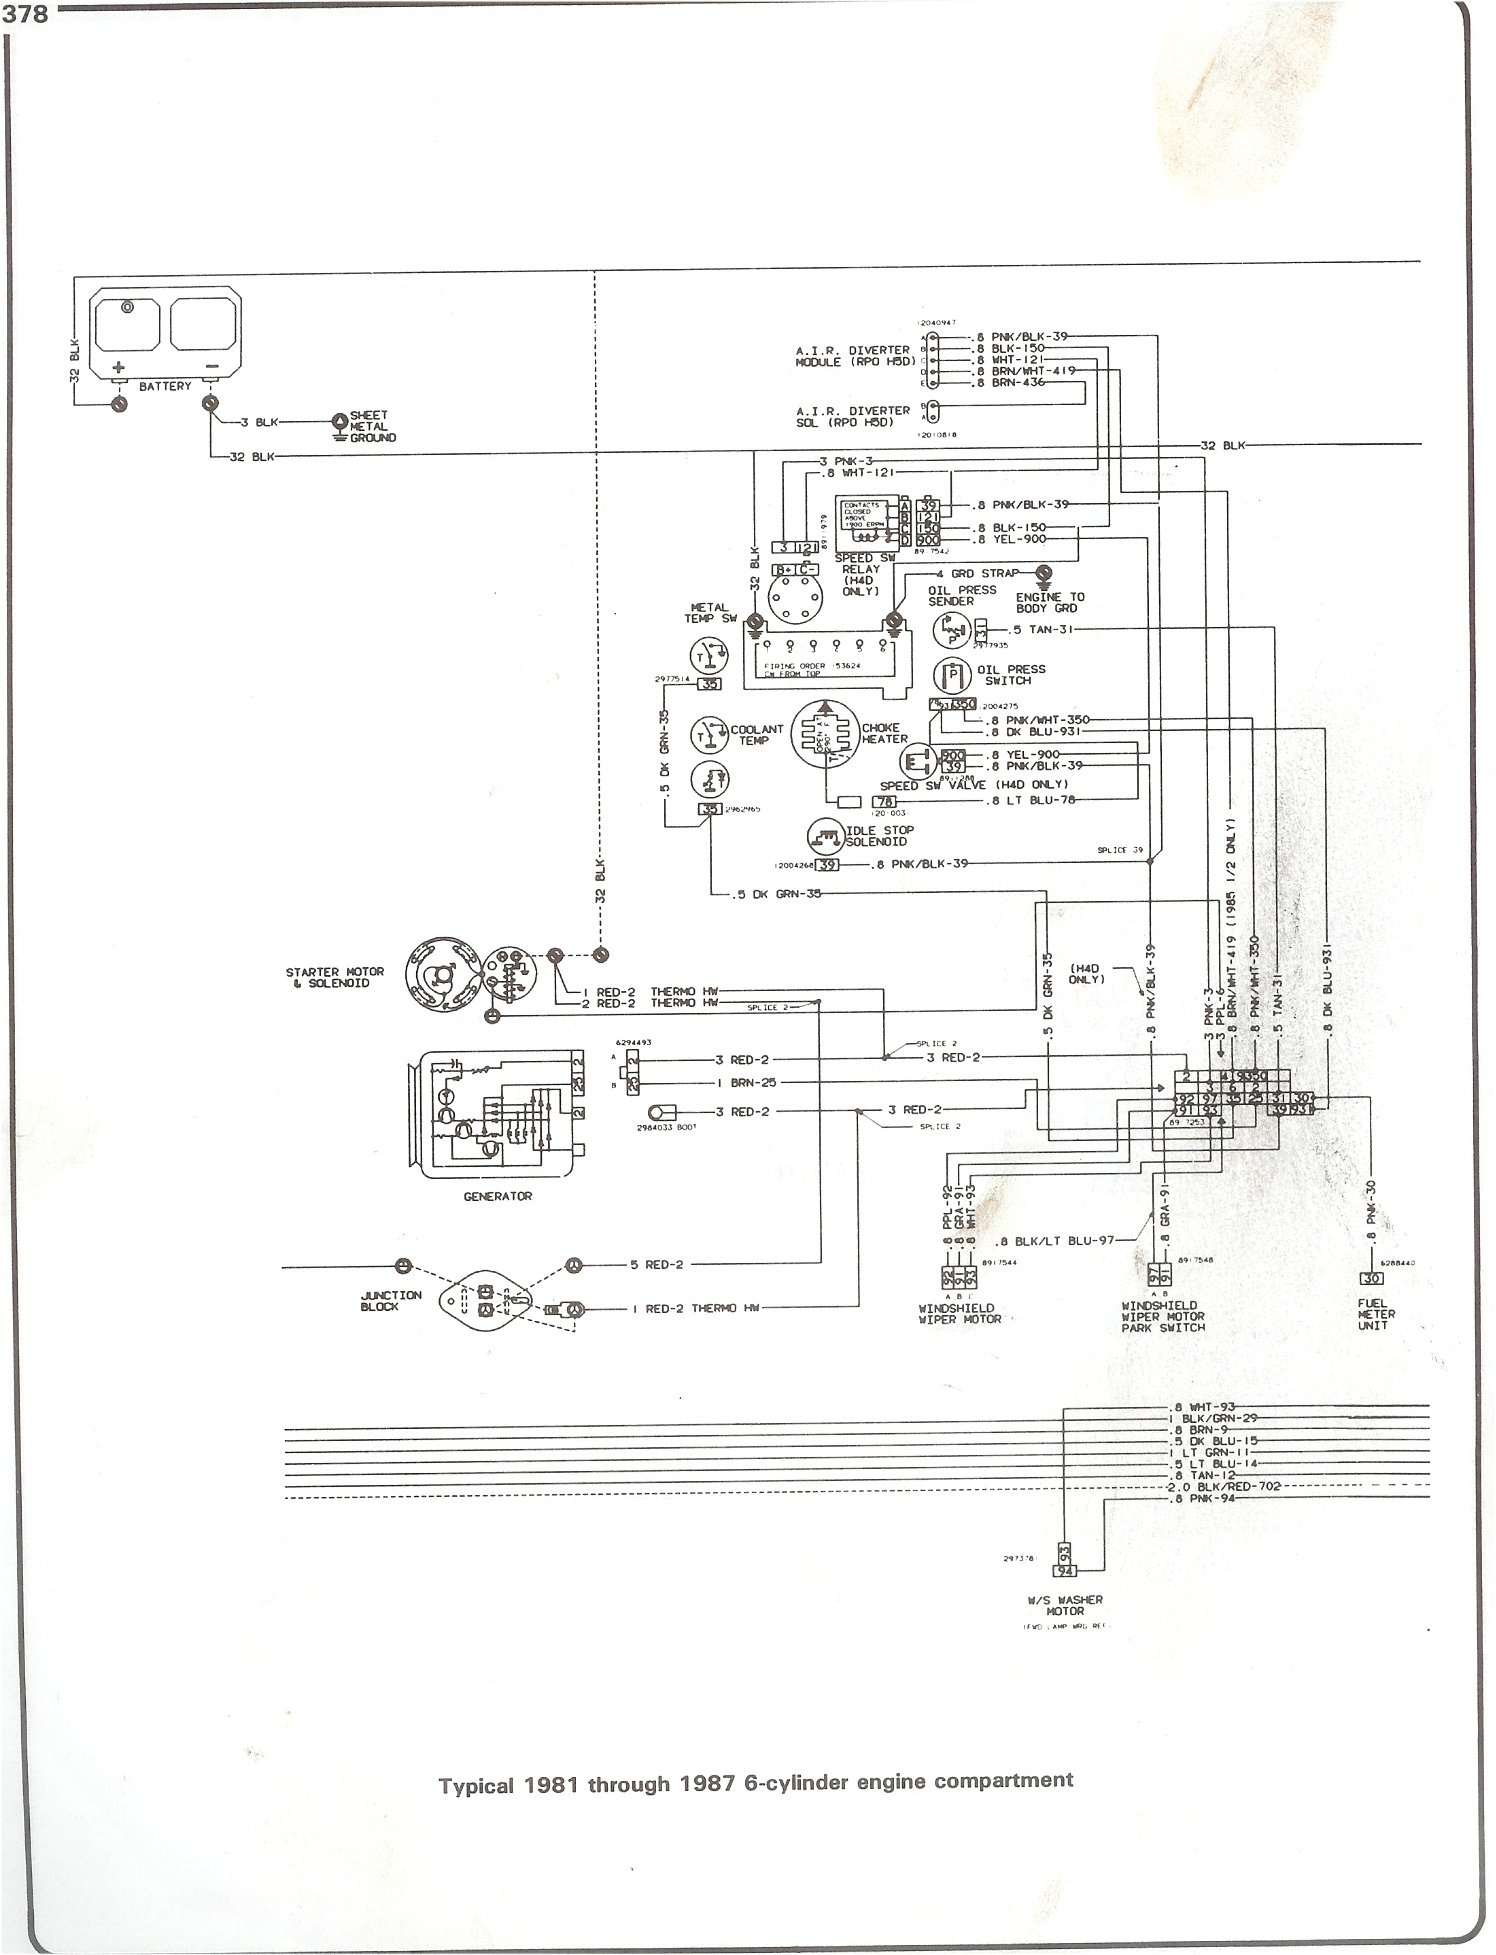 Wiring Diagram On 76 Chevy Truck - Data Wiring Diagram Today on 1985 chevy truck speedometer, 1985 chevy silverado truck catalog, 1998 mitsubishi mirage radio wiring diagram, 72 chevy wiring diagram, 1985 chevy truck horn, 1985 chevy truck control panel, 1985 chevy truck rollpan, 1985 chevy truck fuel gauge, 350 chevy engine wiring diagram, 1985 chevy 350 engine diagram, 1985 chevy truck carburetor, 1985 chevy truck 4x4, chevy s10 wiring diagram, 1950 ford turn signal wiring diagram, 1985 chevy truck dimensions, 1985 chevy truck timing, 1987 chevy wiring diagram, 1985 chevy truck brochure, 1985 chevy truck body, 1985 chevy truck voltage regulator,